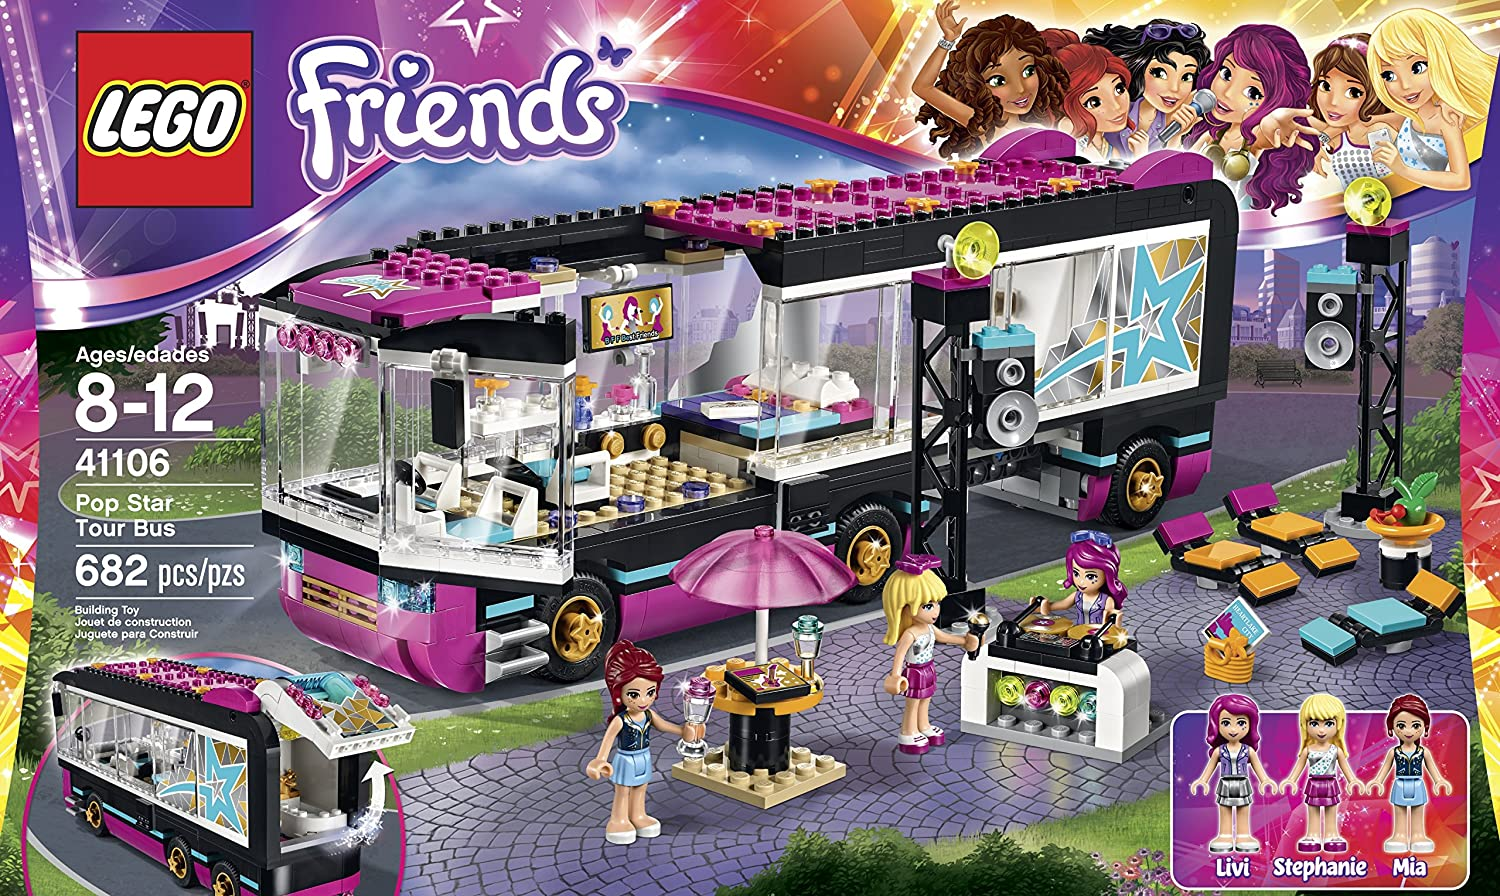 Amazon LEGO Friends 41106 Pop Star Tour Bus Building Kit Toys Games